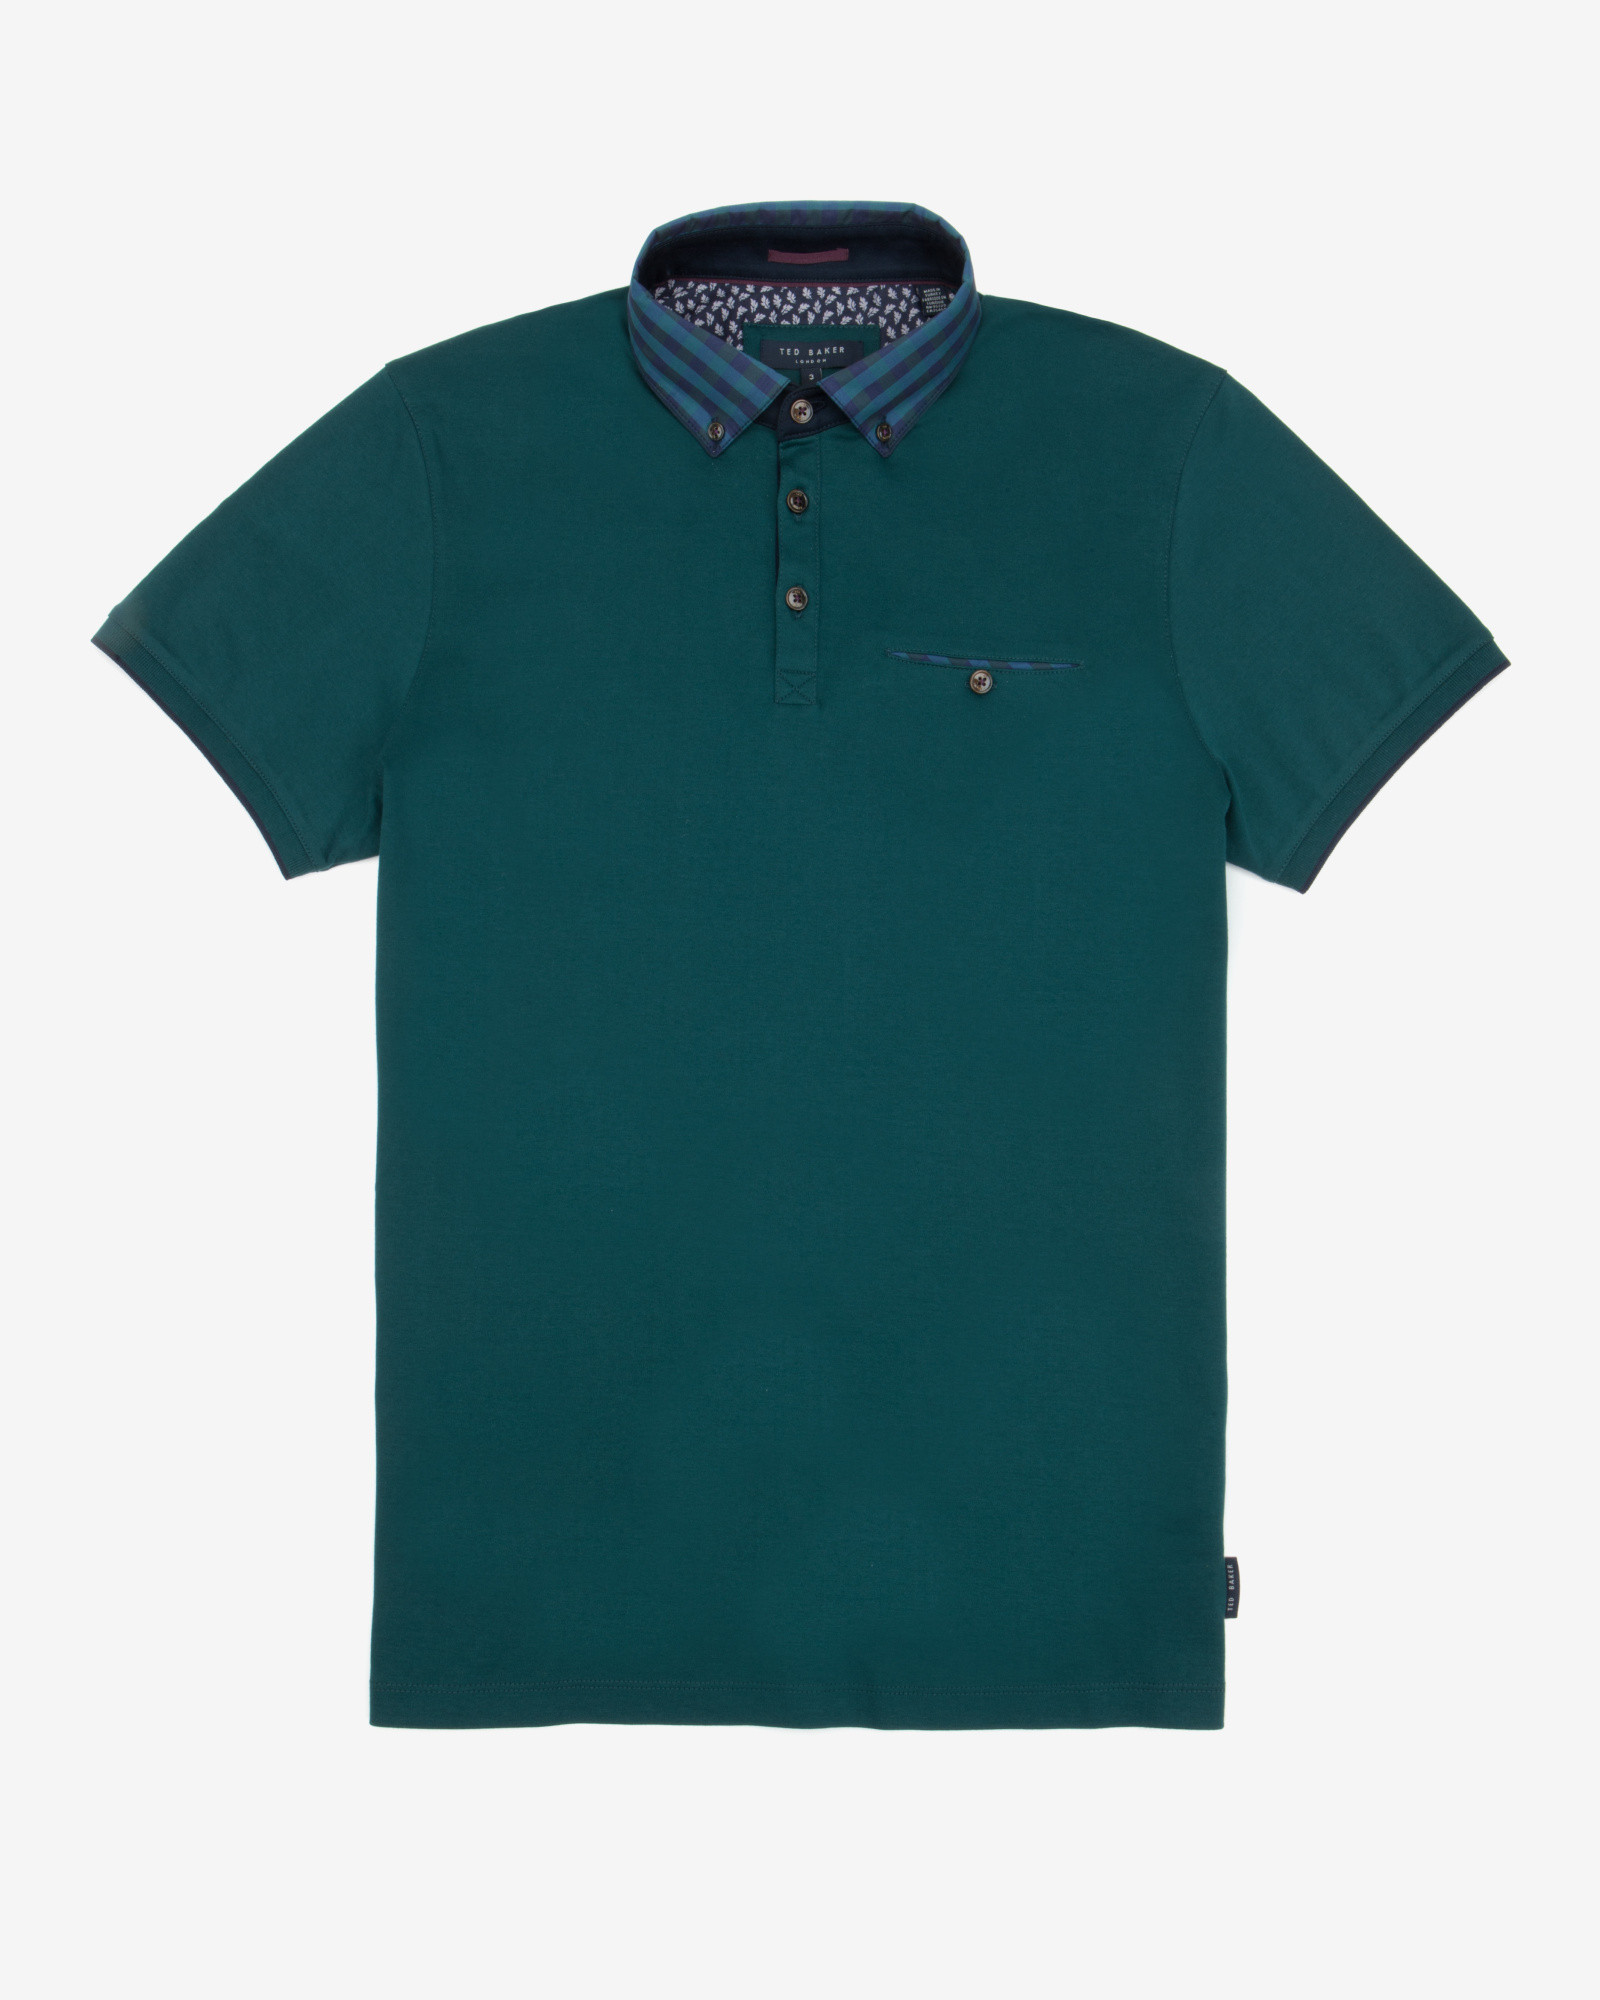 Ted baker checked collar polo shirt in teal for men lyst for Mens teal polo shirt